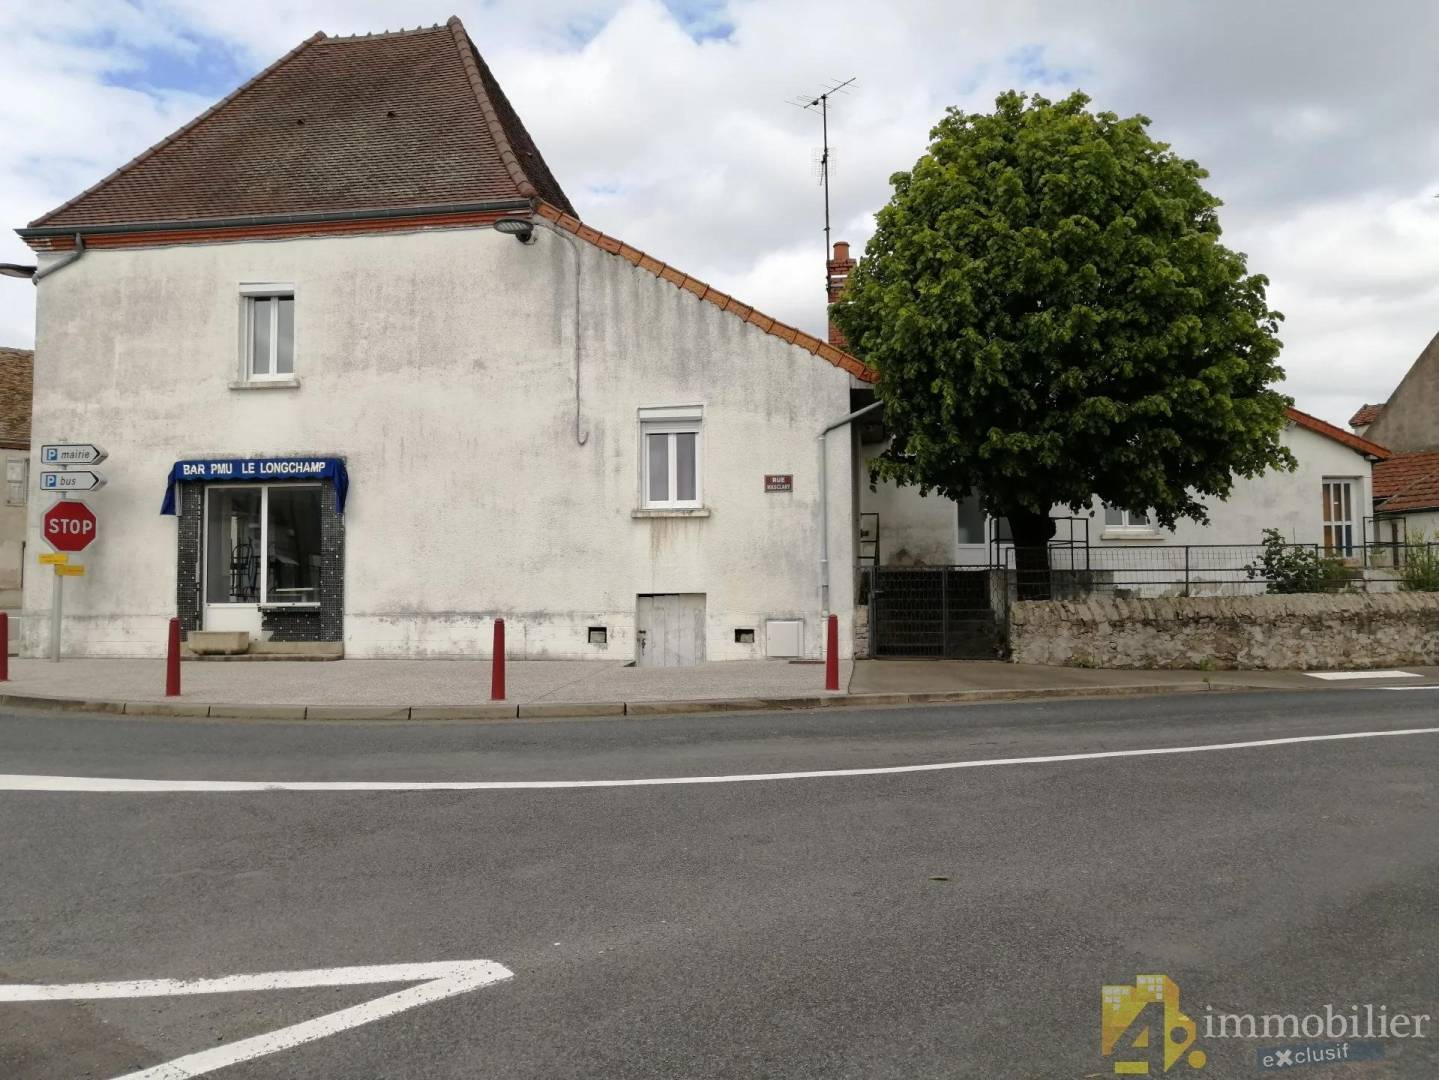 1 13 Perrecy-les-Forges